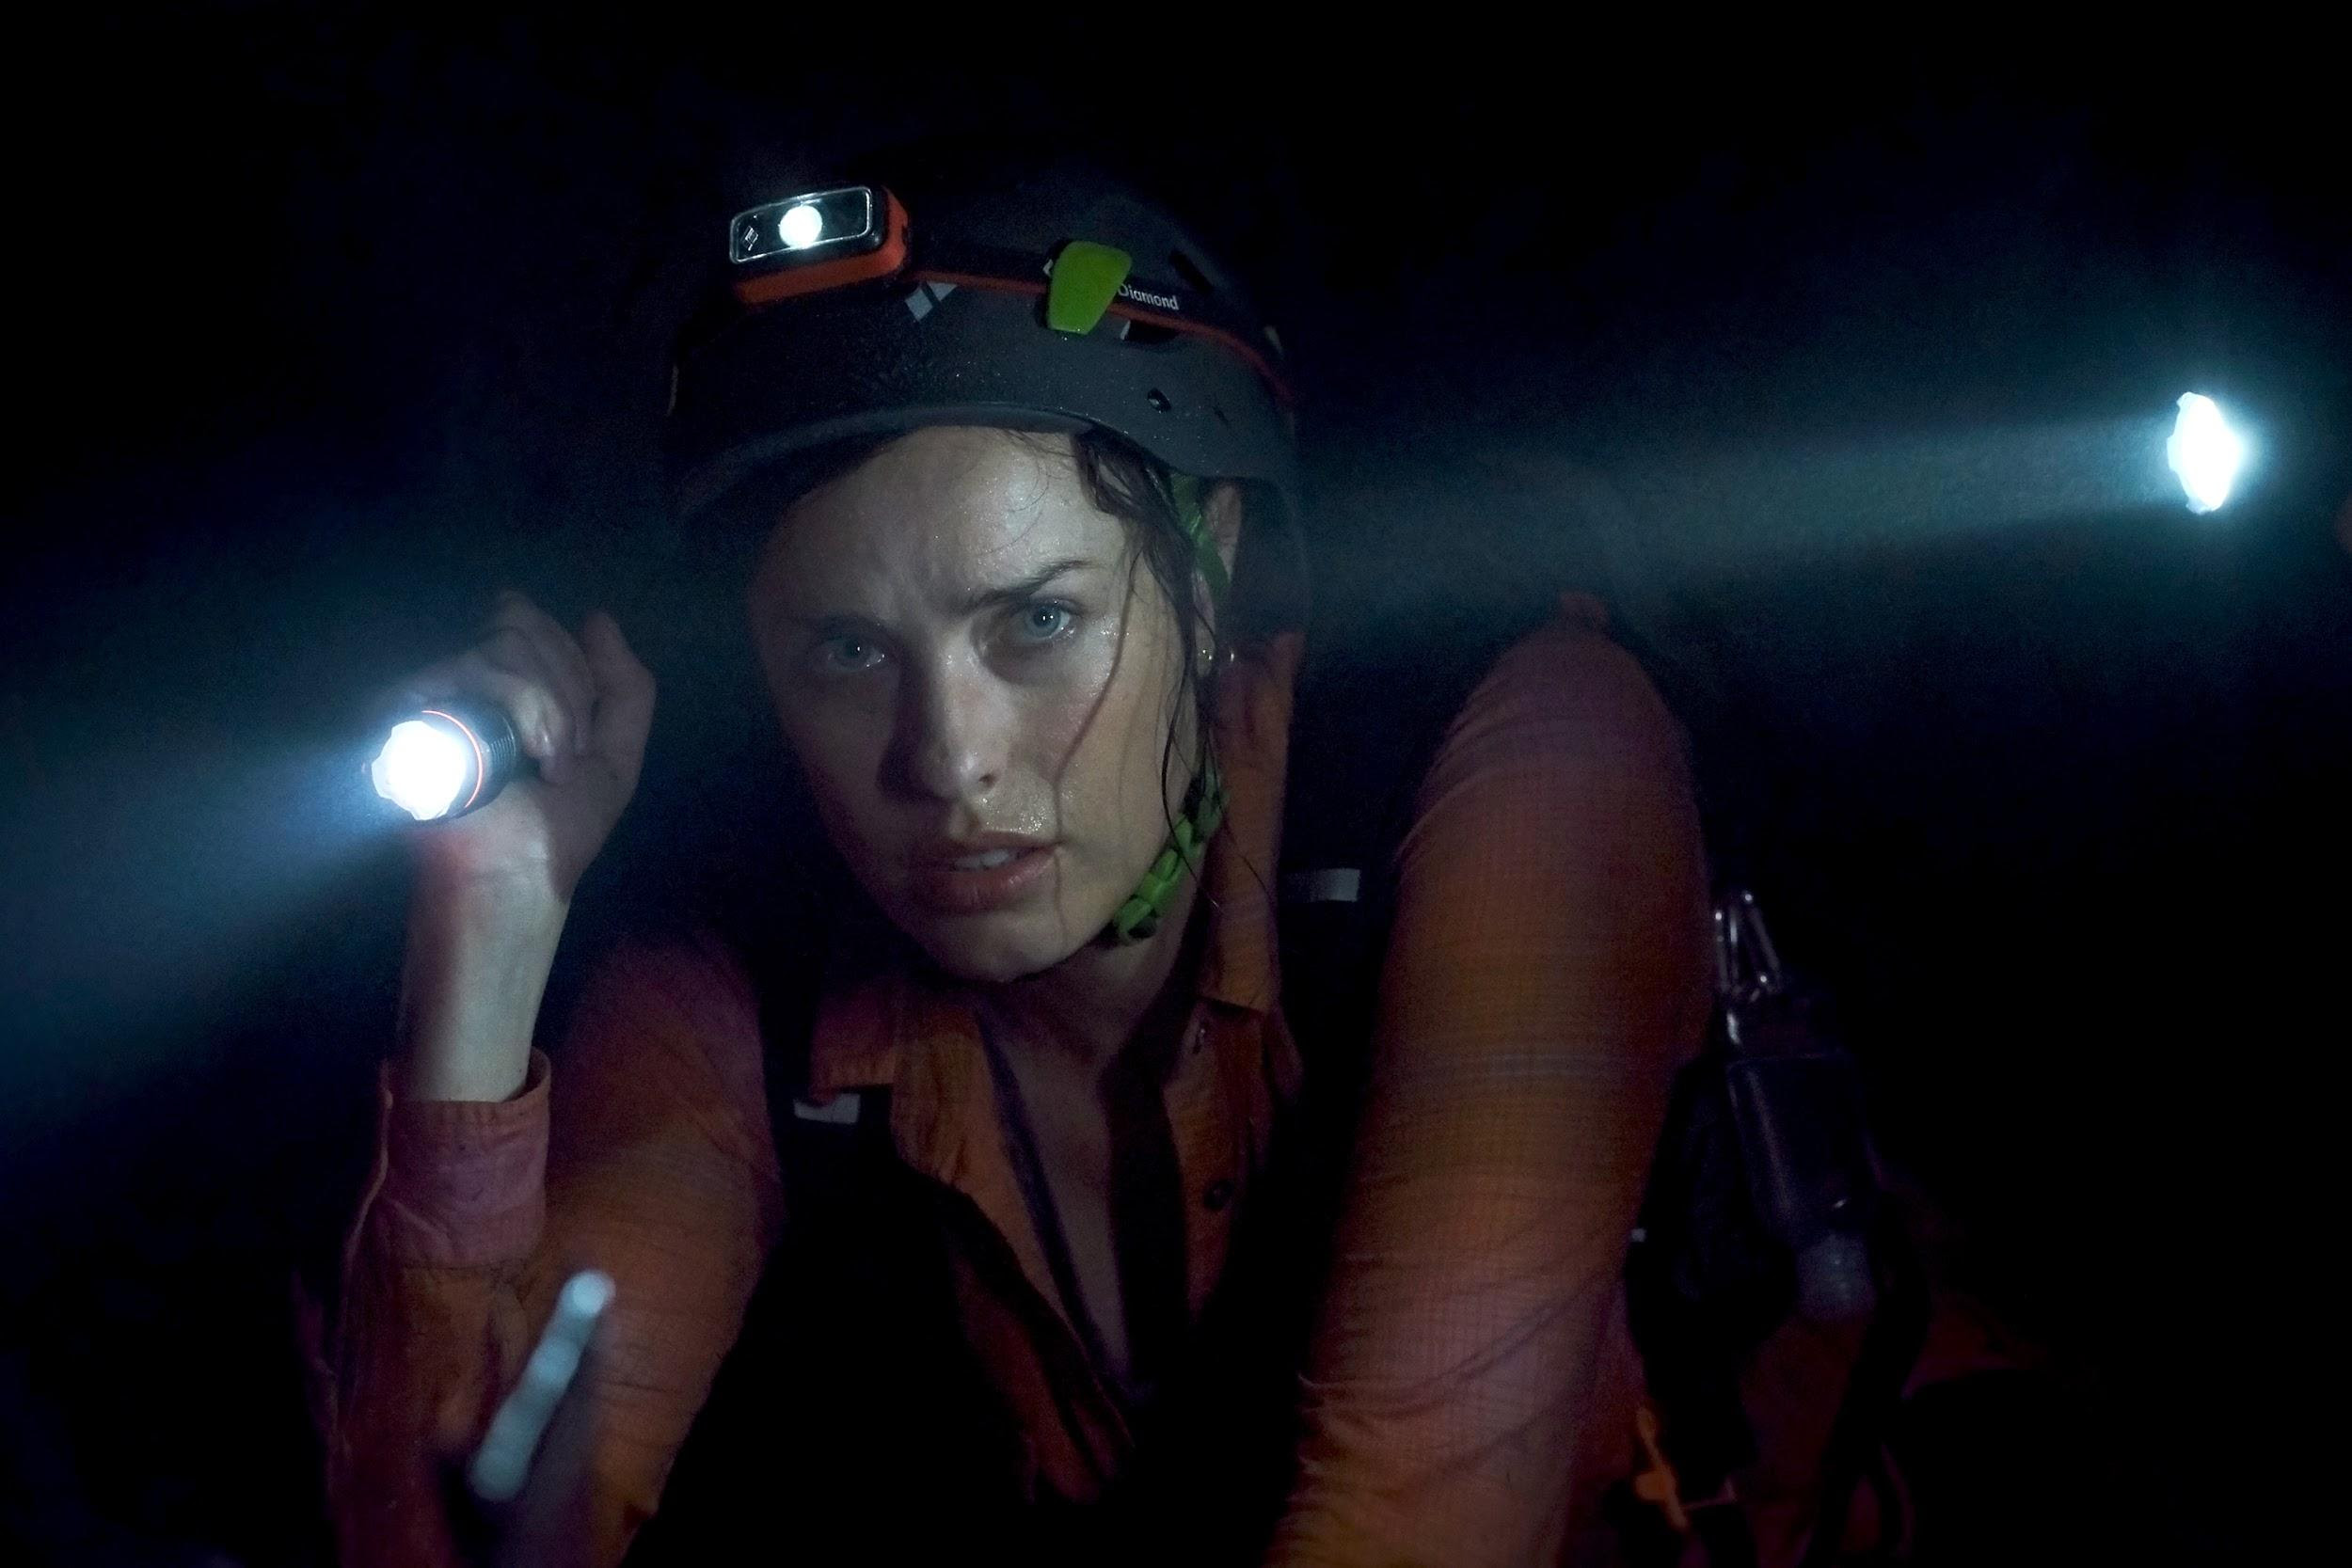 Black Water: Abyss – comes to digital download and DVD